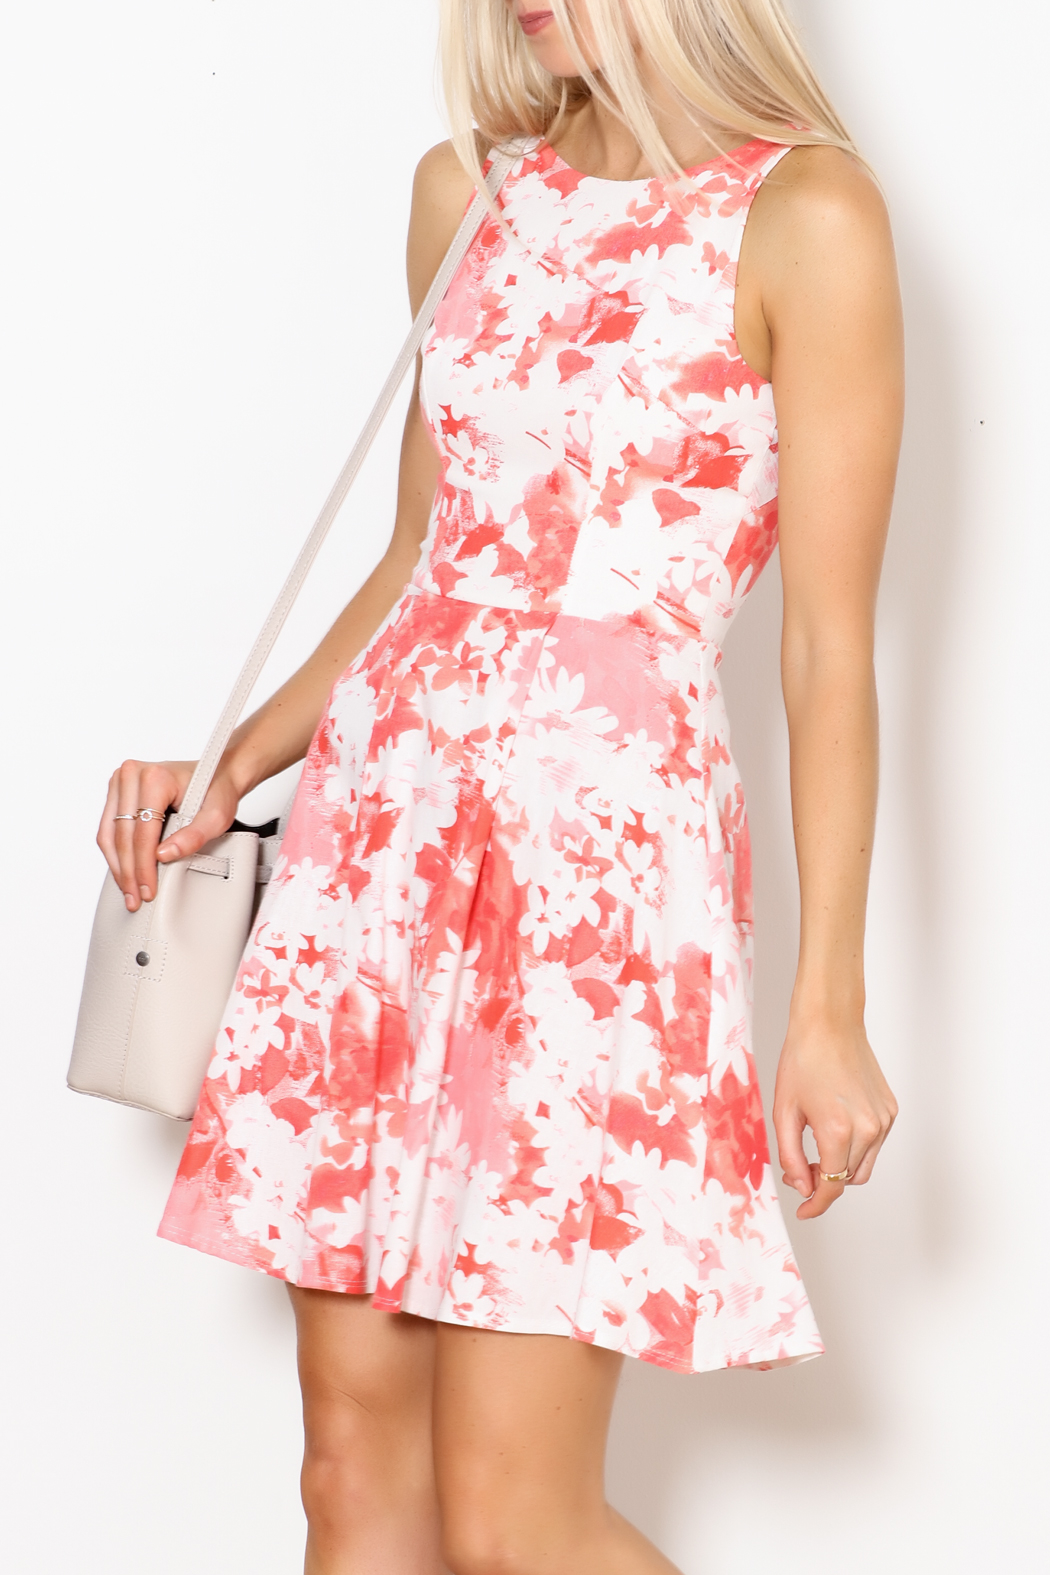 Dress Code Floral Tank Dress - Main Image